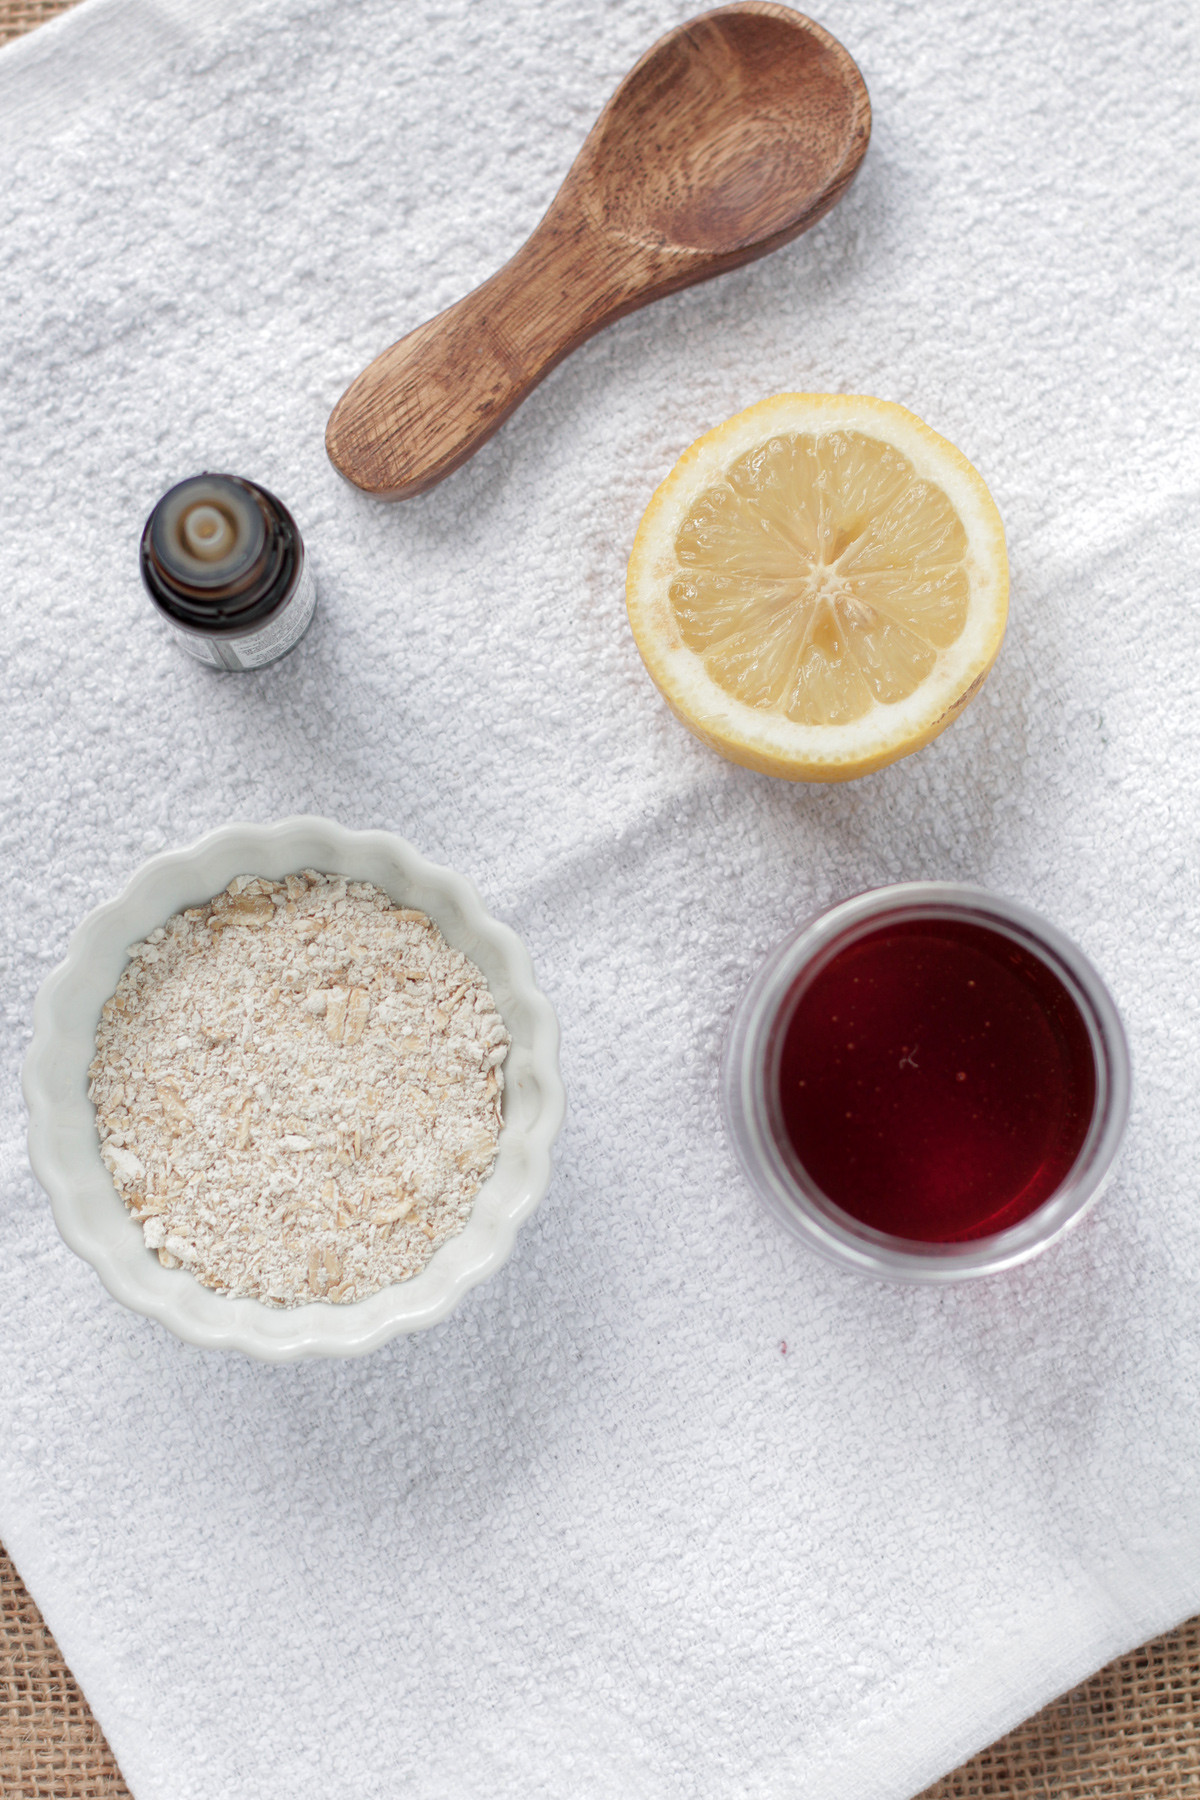 Best ideas about Acne Mask DIY . Save or Pin Homemade Honey Oatmeal Acne Mask Live Simply Now.